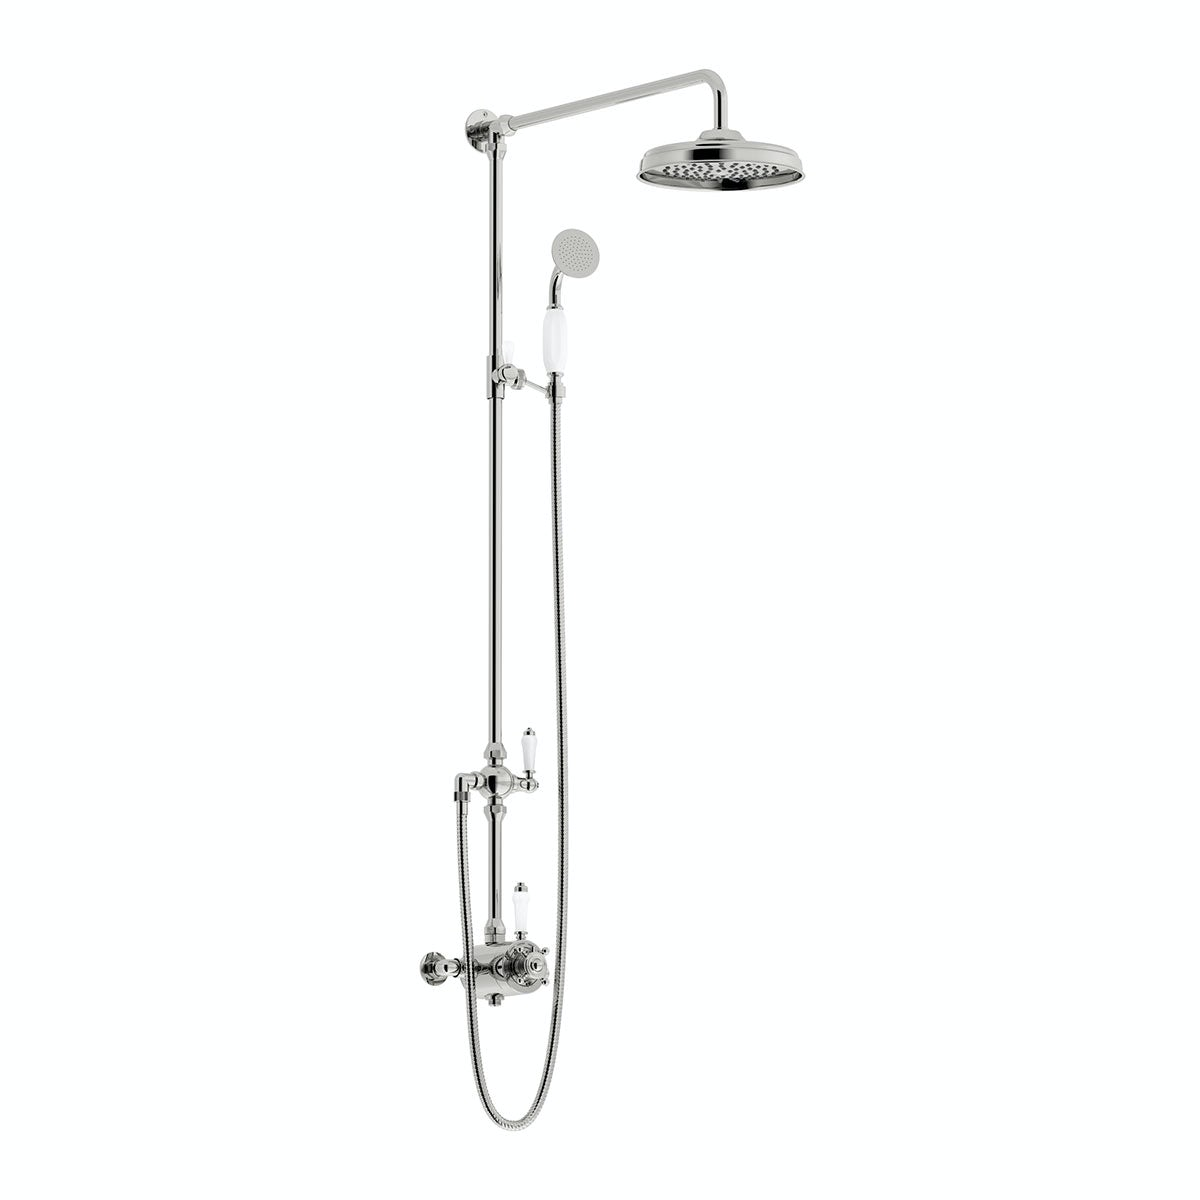 dulwich rain can shower head riser shower system